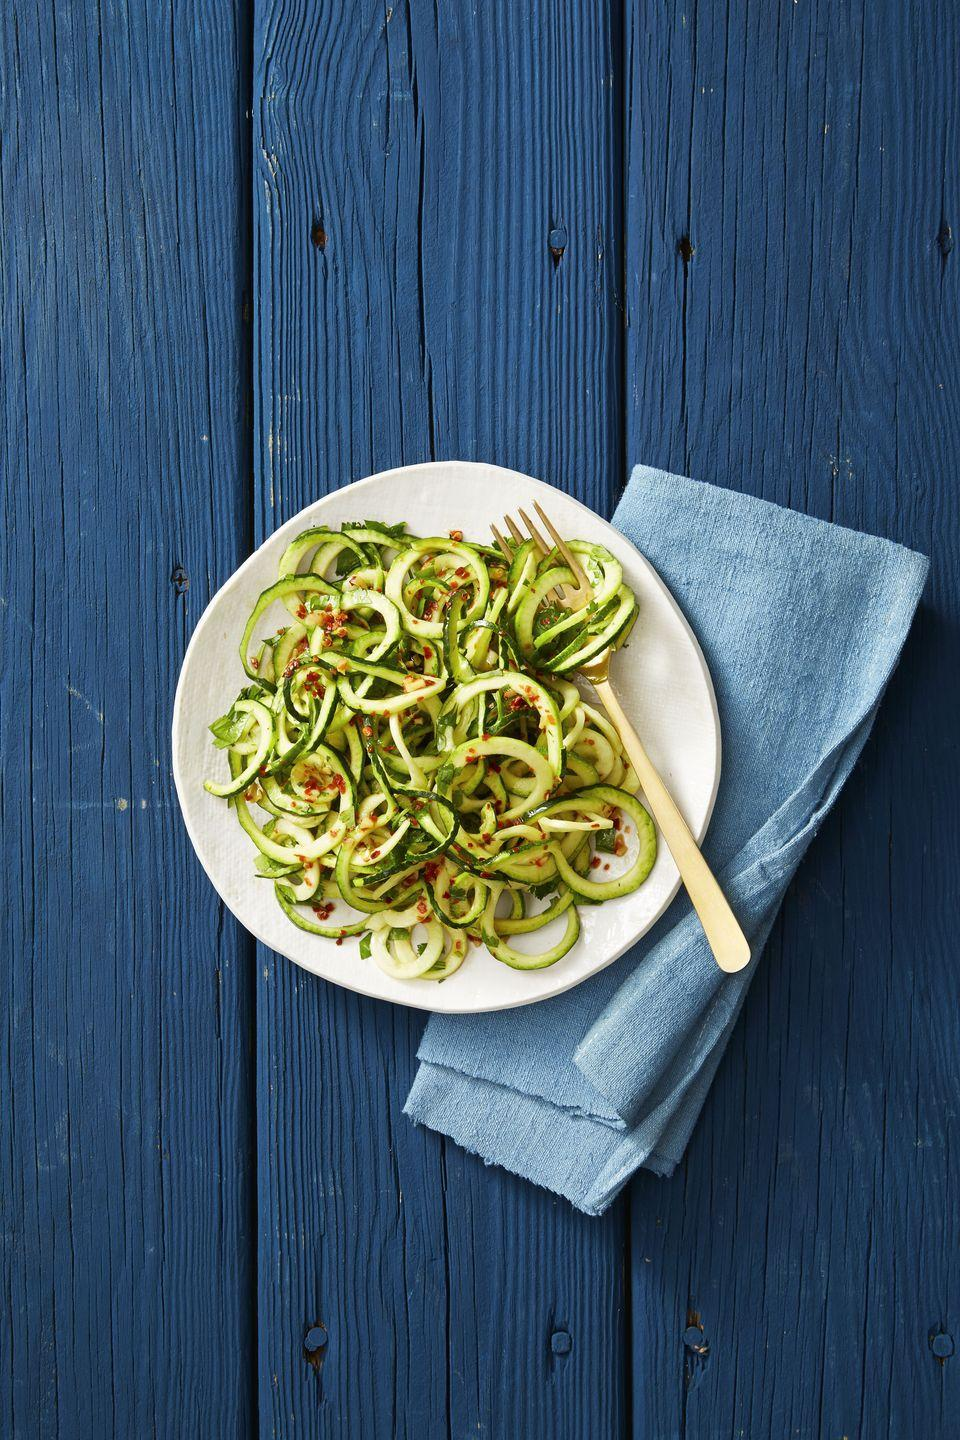 """<p>An updated take on a classic pasta salad, this plate of toothy noodles contains a mere 85 calories per serving (feel free to heap on the seconds!). It's ready in under 20 minutes flat, and requires zero stove time. </p><p><a href=""""https://www.goodhousekeeping.com/food-recipes/a38869/asian-sesame-zucchini-noodles-recipe/"""" rel=""""nofollow noopener"""" target=""""_blank"""" data-ylk=""""slk:Get the recipe for Asian Sesame Zucchini Noodles »"""" class=""""link rapid-noclick-resp""""><em>Get the recipe for Asian Sesame Zucchini Noodles » </em></a></p>"""